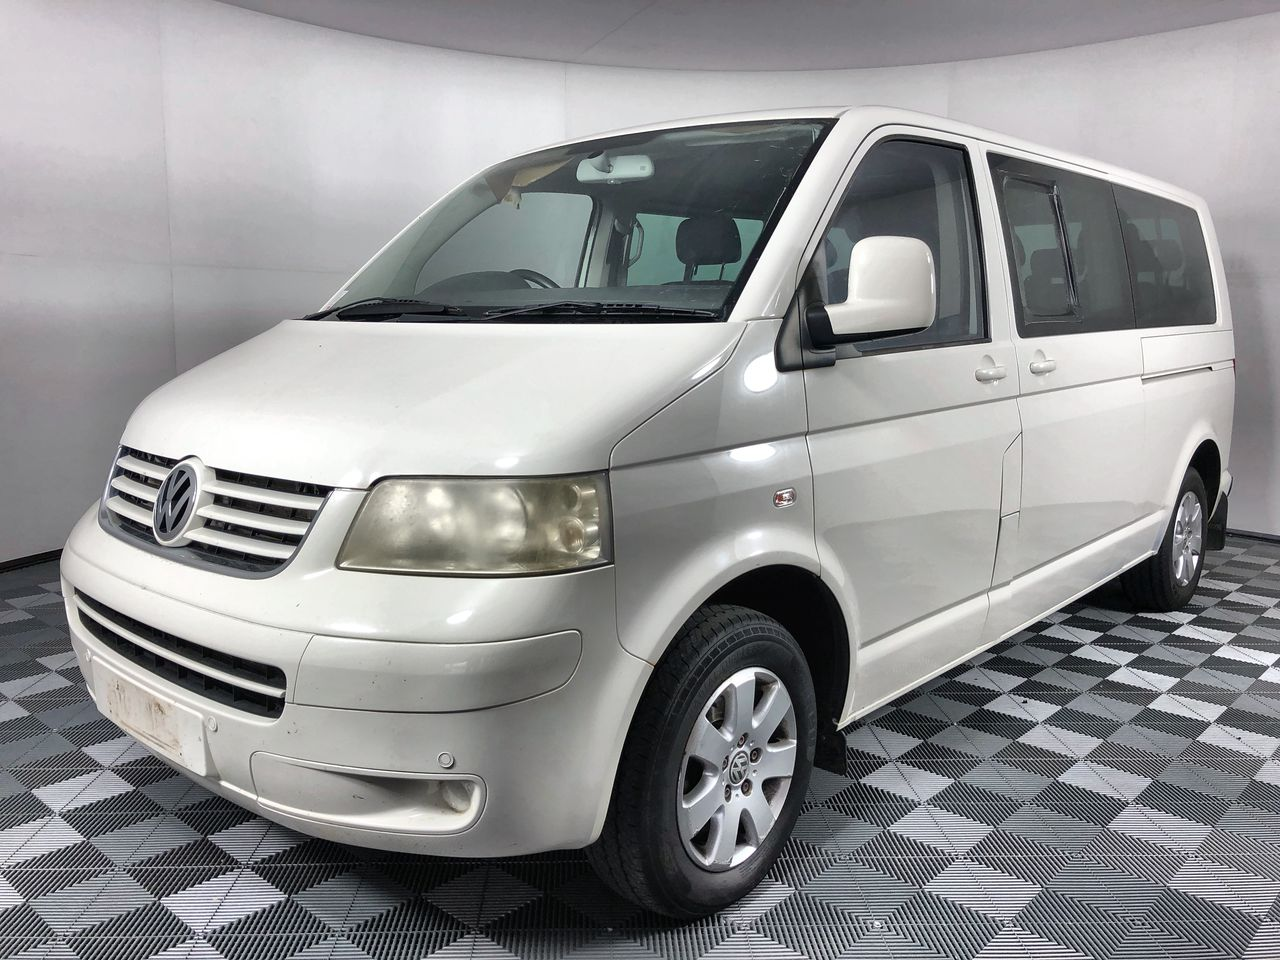 2008 Volkswagen Caravelle LWB T5 Turbo Diesel Auto 9 Seats People Mover